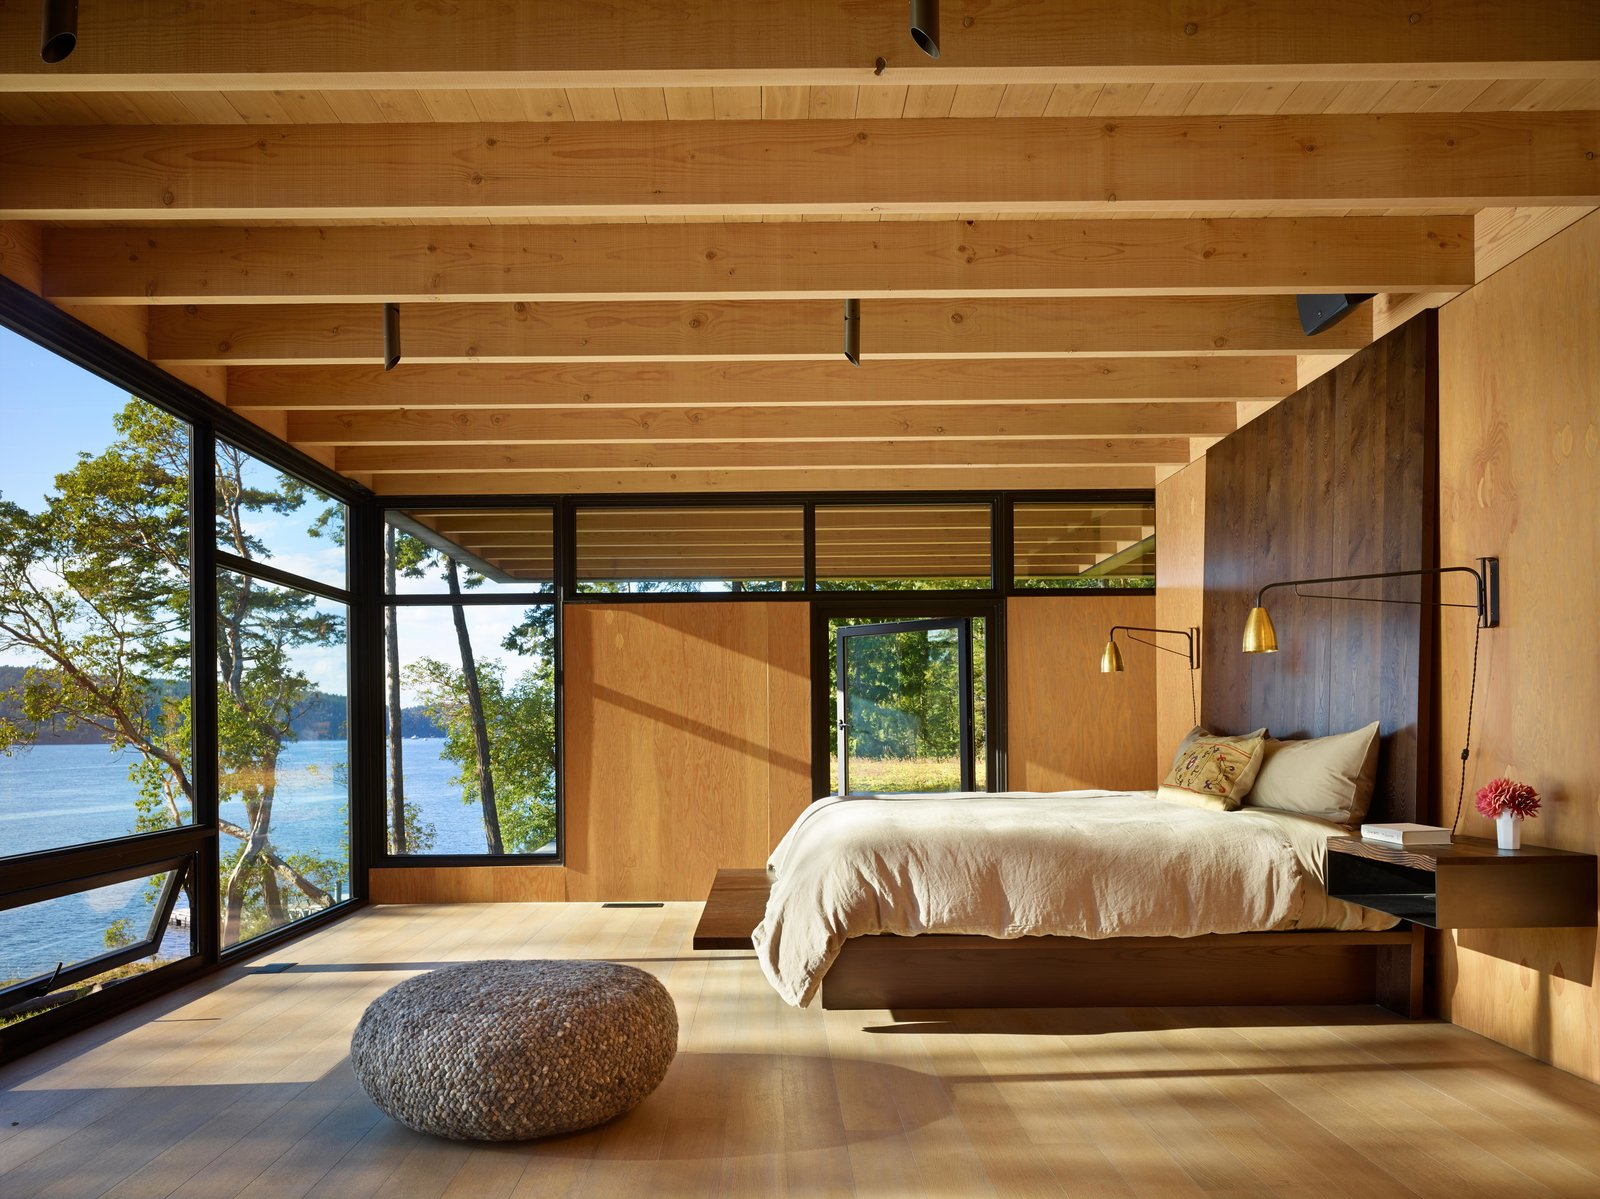 Bedroom Pole Pass Retreat   Olson Kundig  Photo 2 of 5 in Top 5 Homes of the Week With Beauteous Bedrooms from Pole Pass Retreat